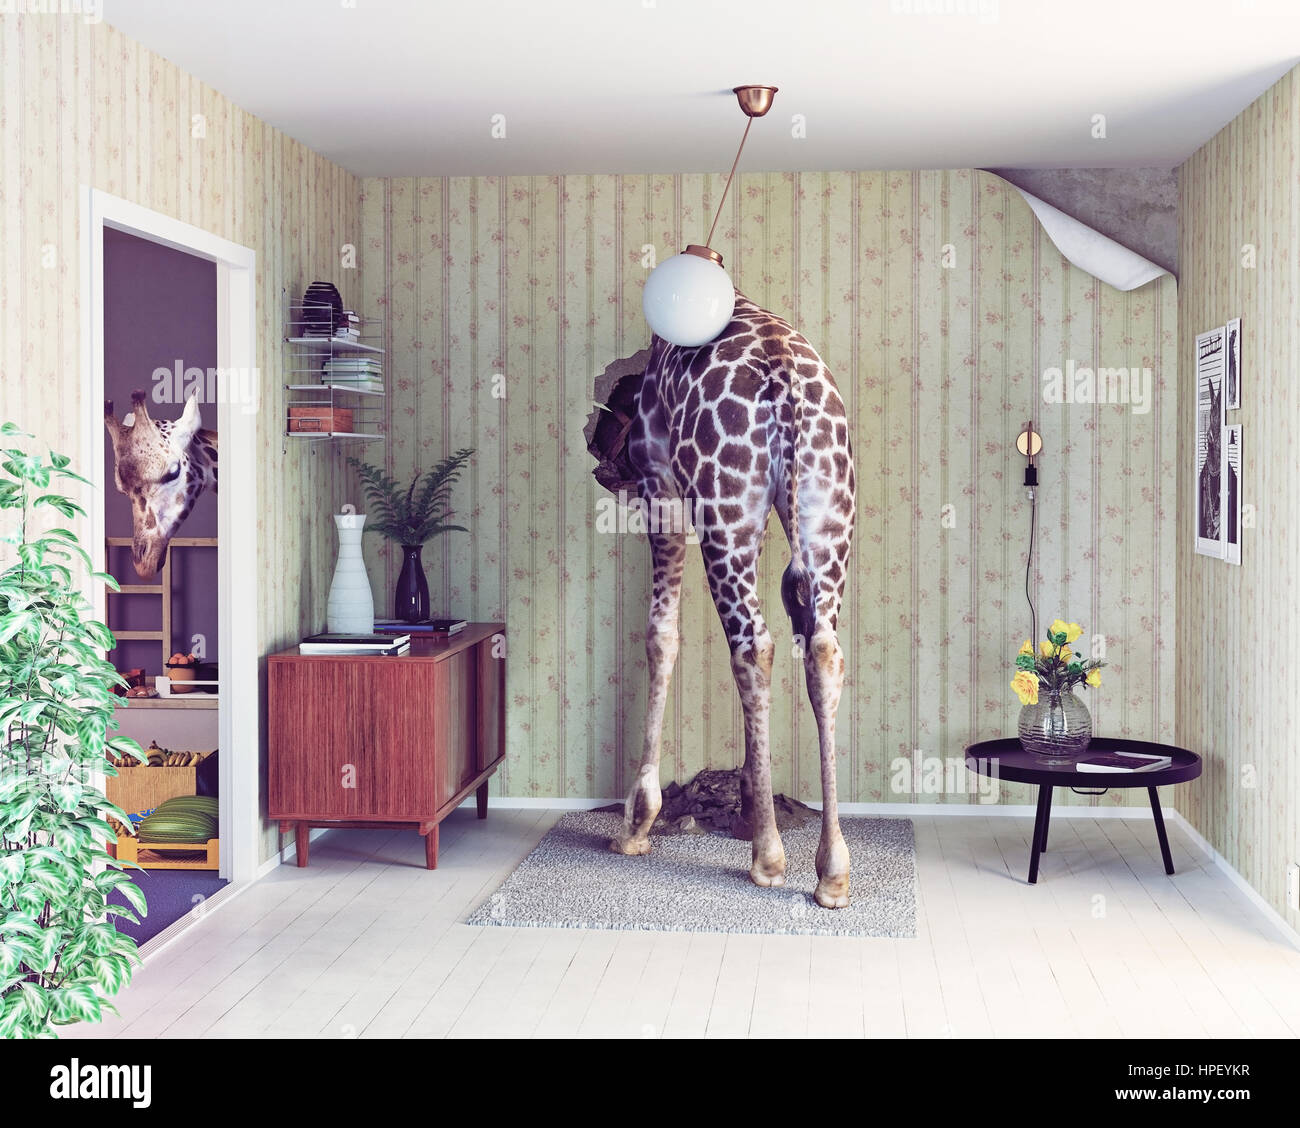 giraffe in the living room. creative concept. Photo and cg elements combination - Stock Image